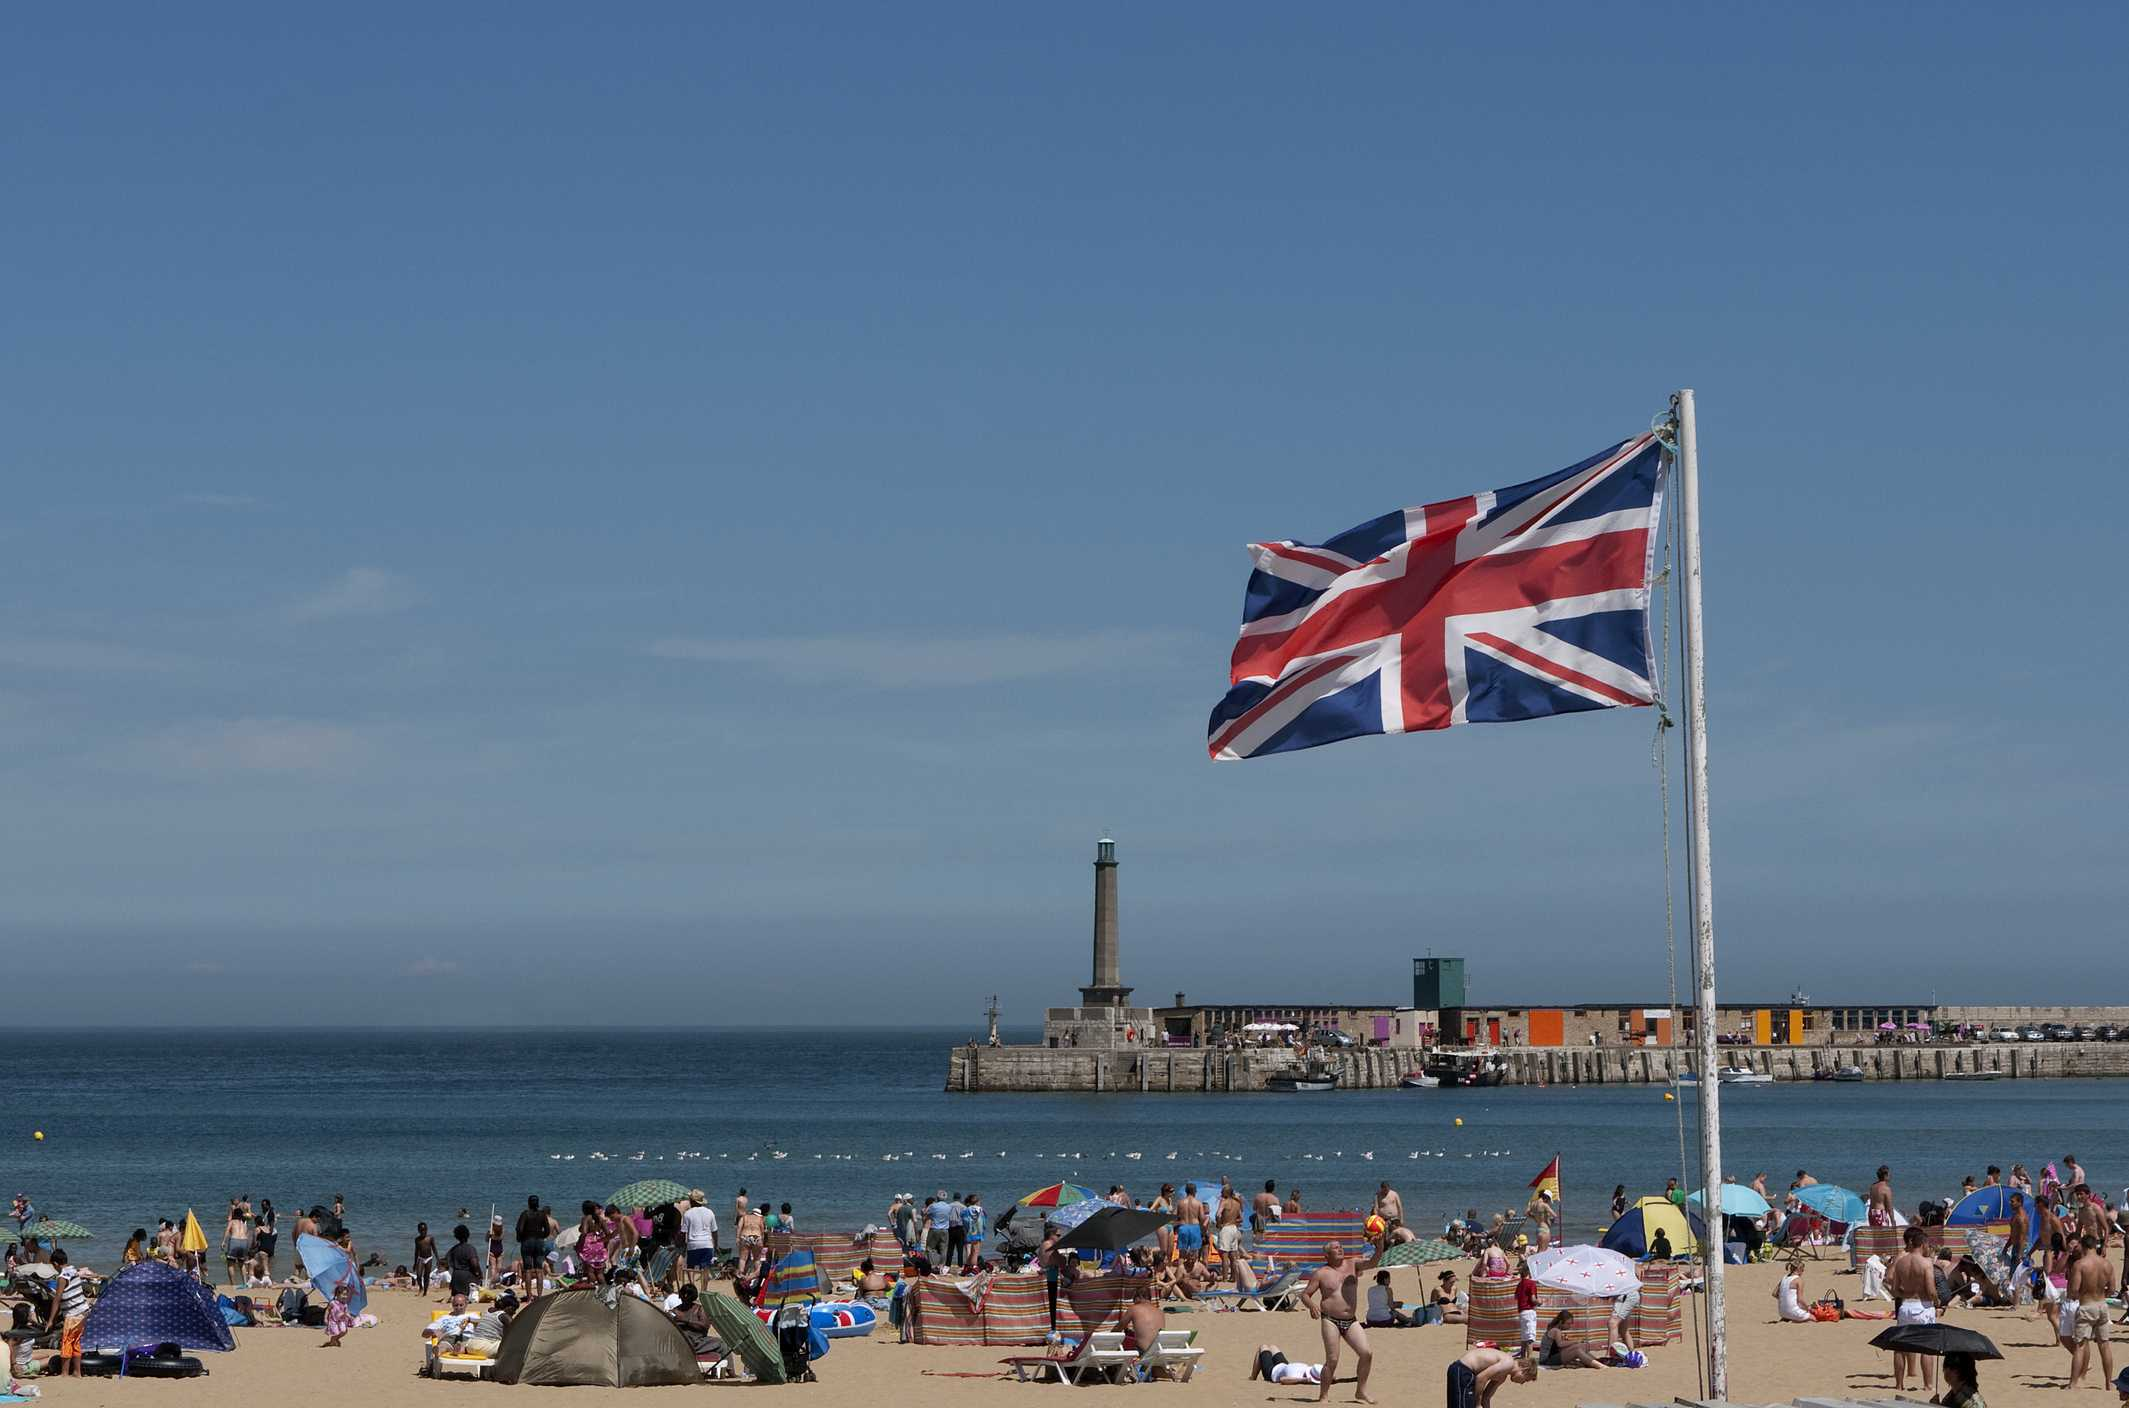 A busy summer's day on Margate beach.